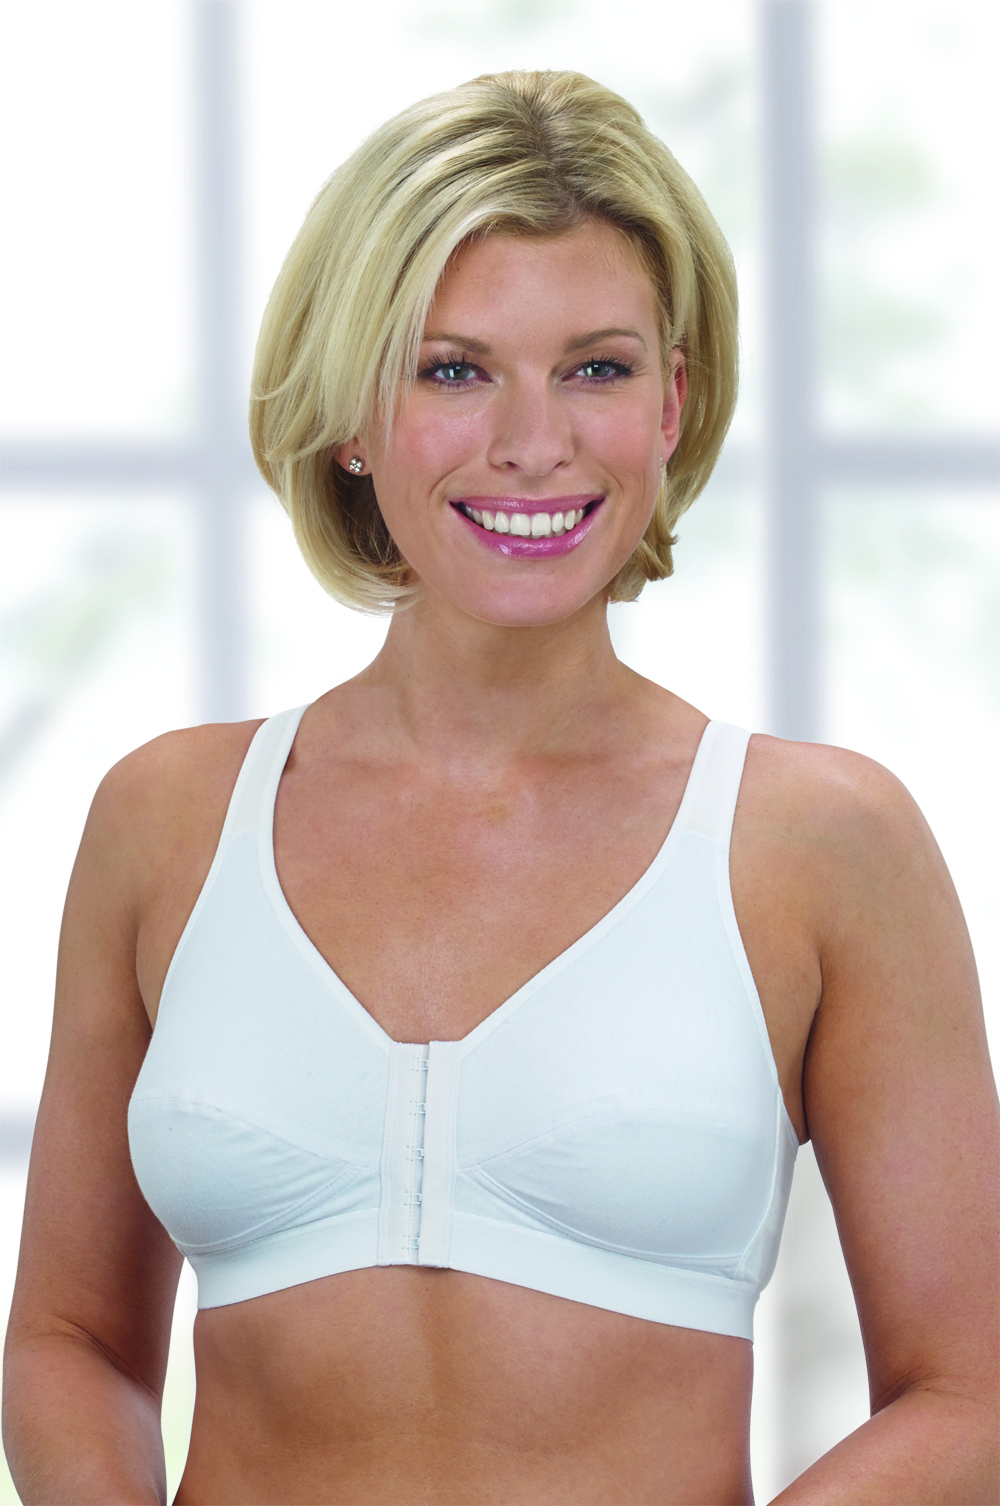 Hilary 95% Cotton Front Fastening Mastectomy Bra (7060) by Nicola Jane